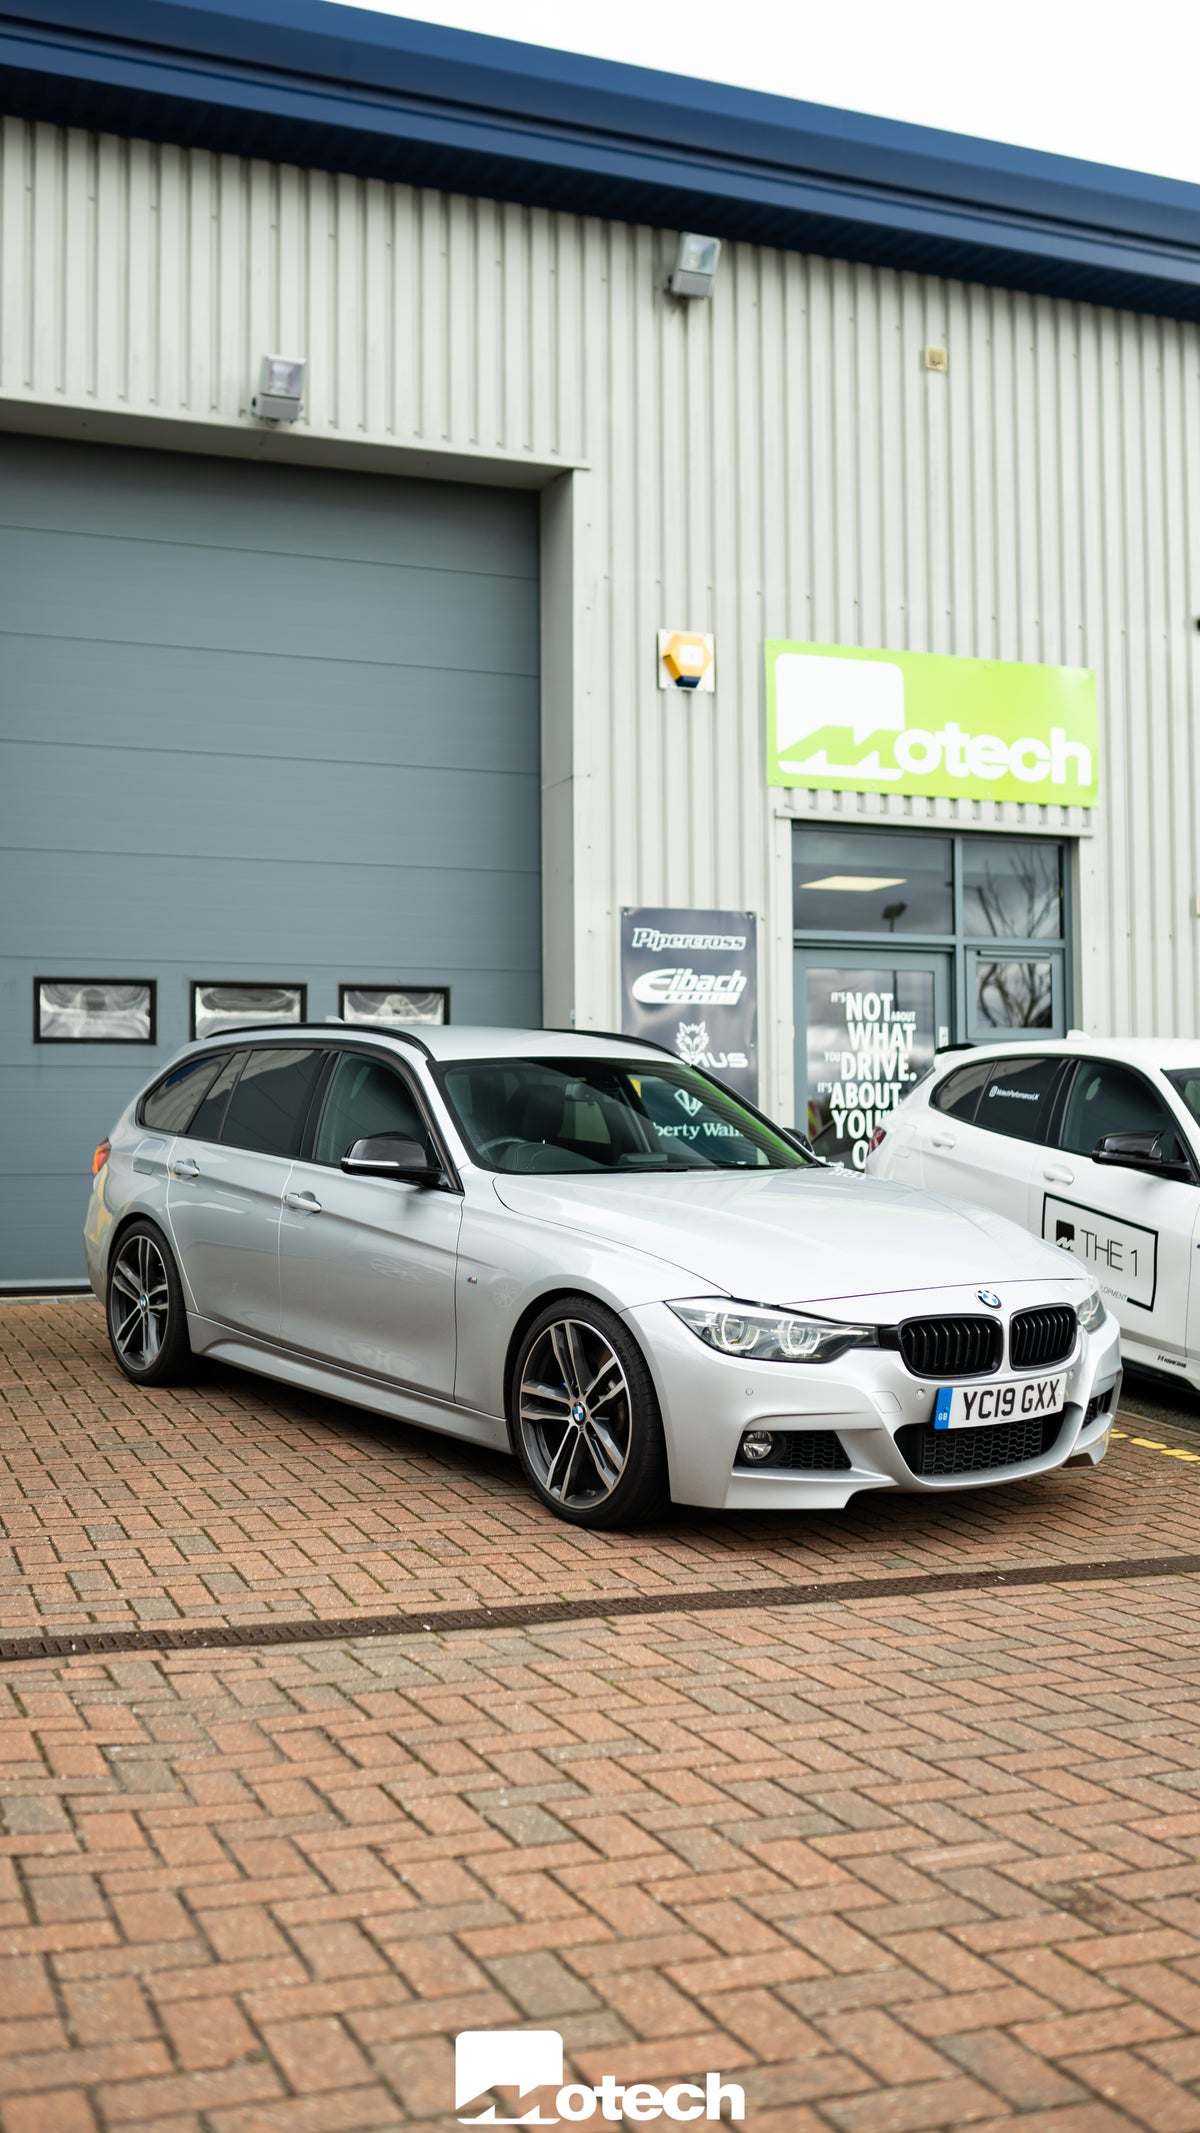 Image of BMW 335d 340i Touring Eibach Lowering Springs